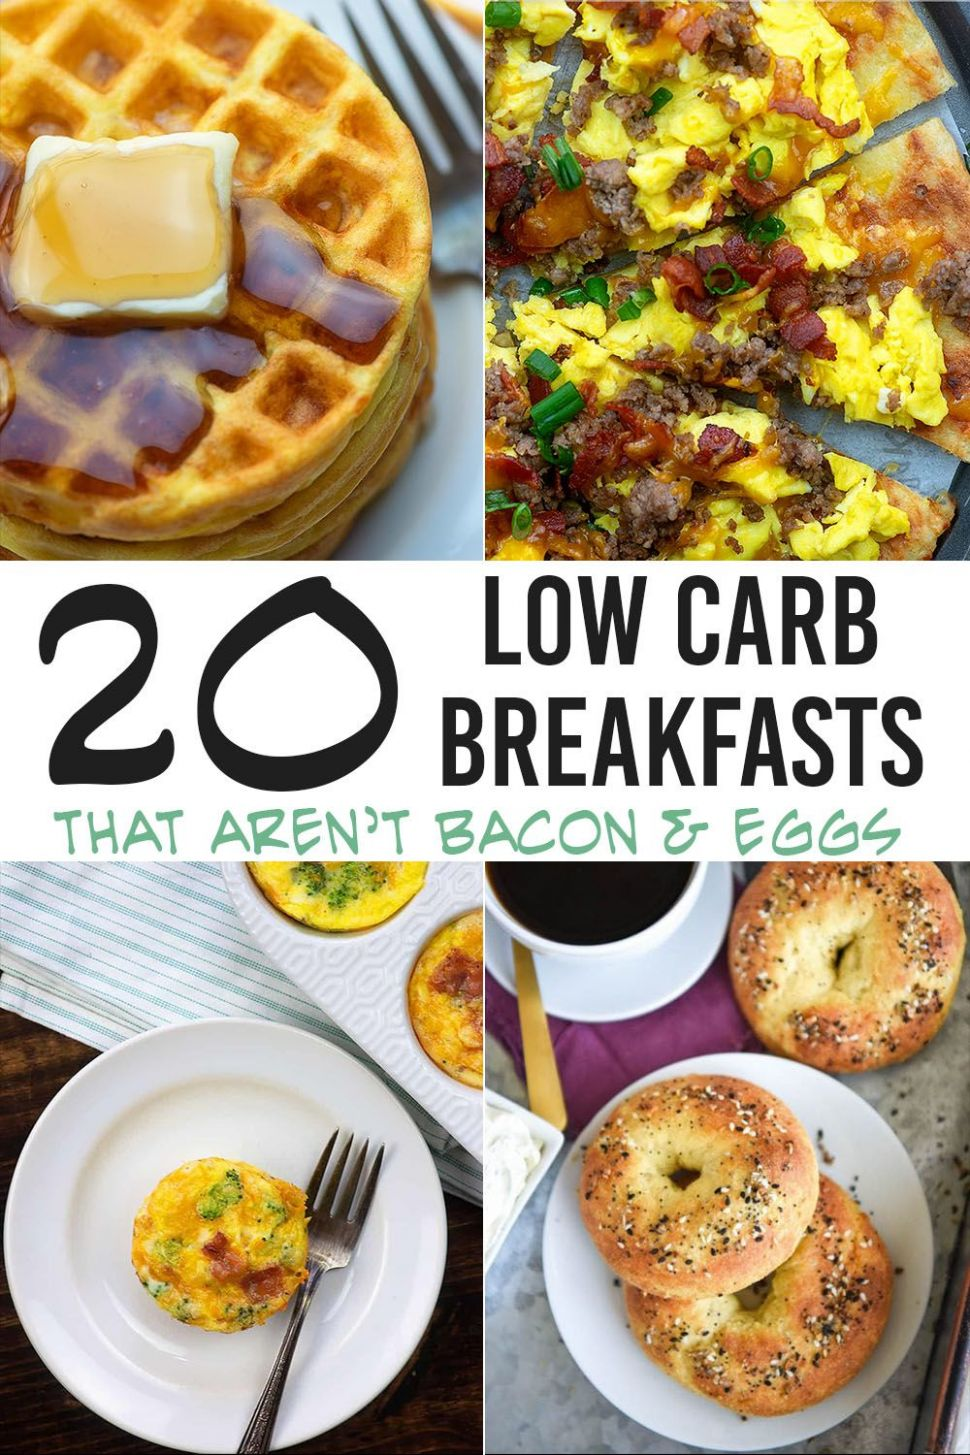 The BEST Low Carb Breakfast Ideas all in one spot! - Breakfast Recipes With Zero Carbs